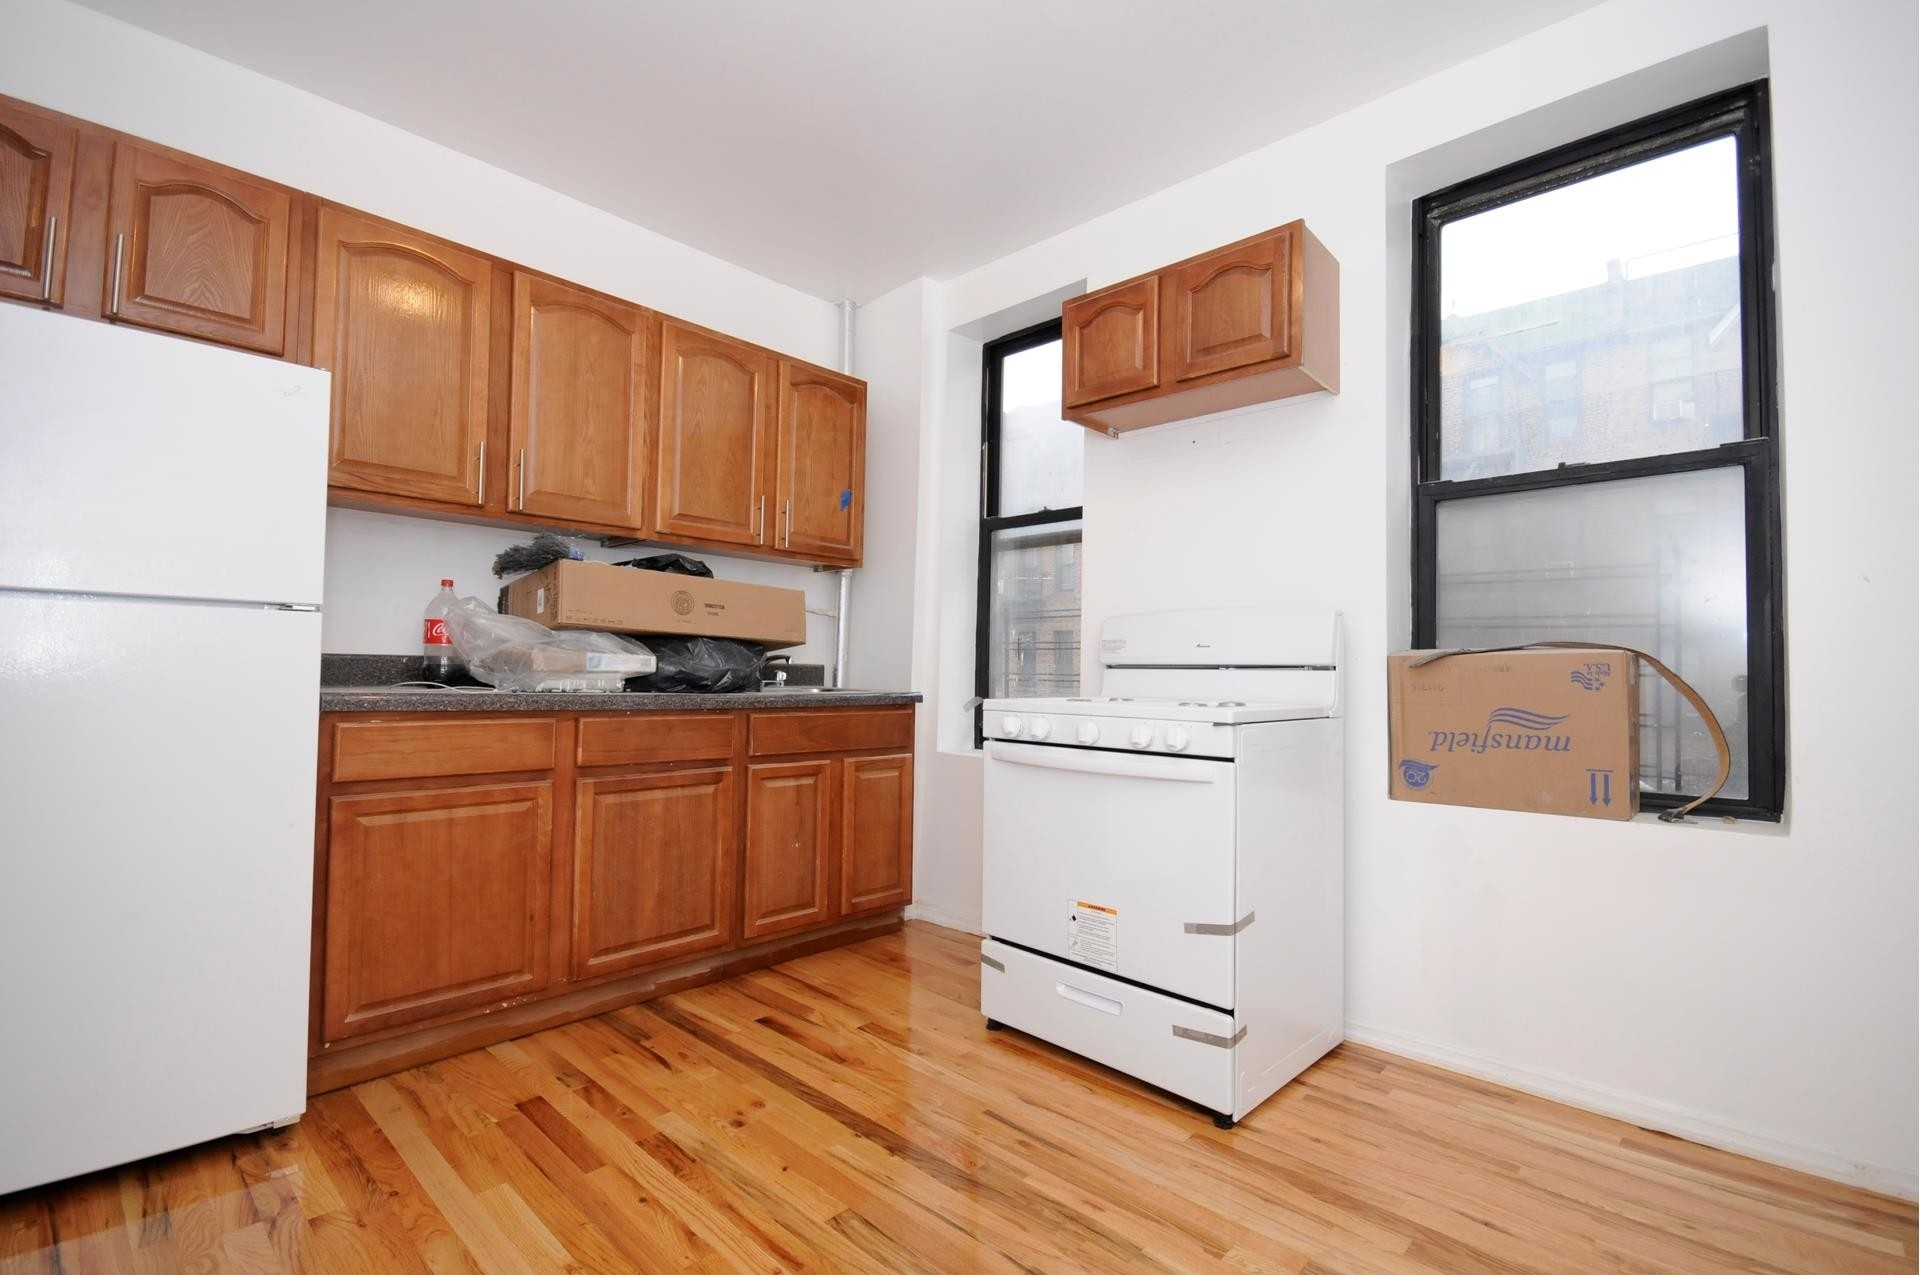 1. edificio en 859 42nd St, Sunset Park, Brooklyn, NY